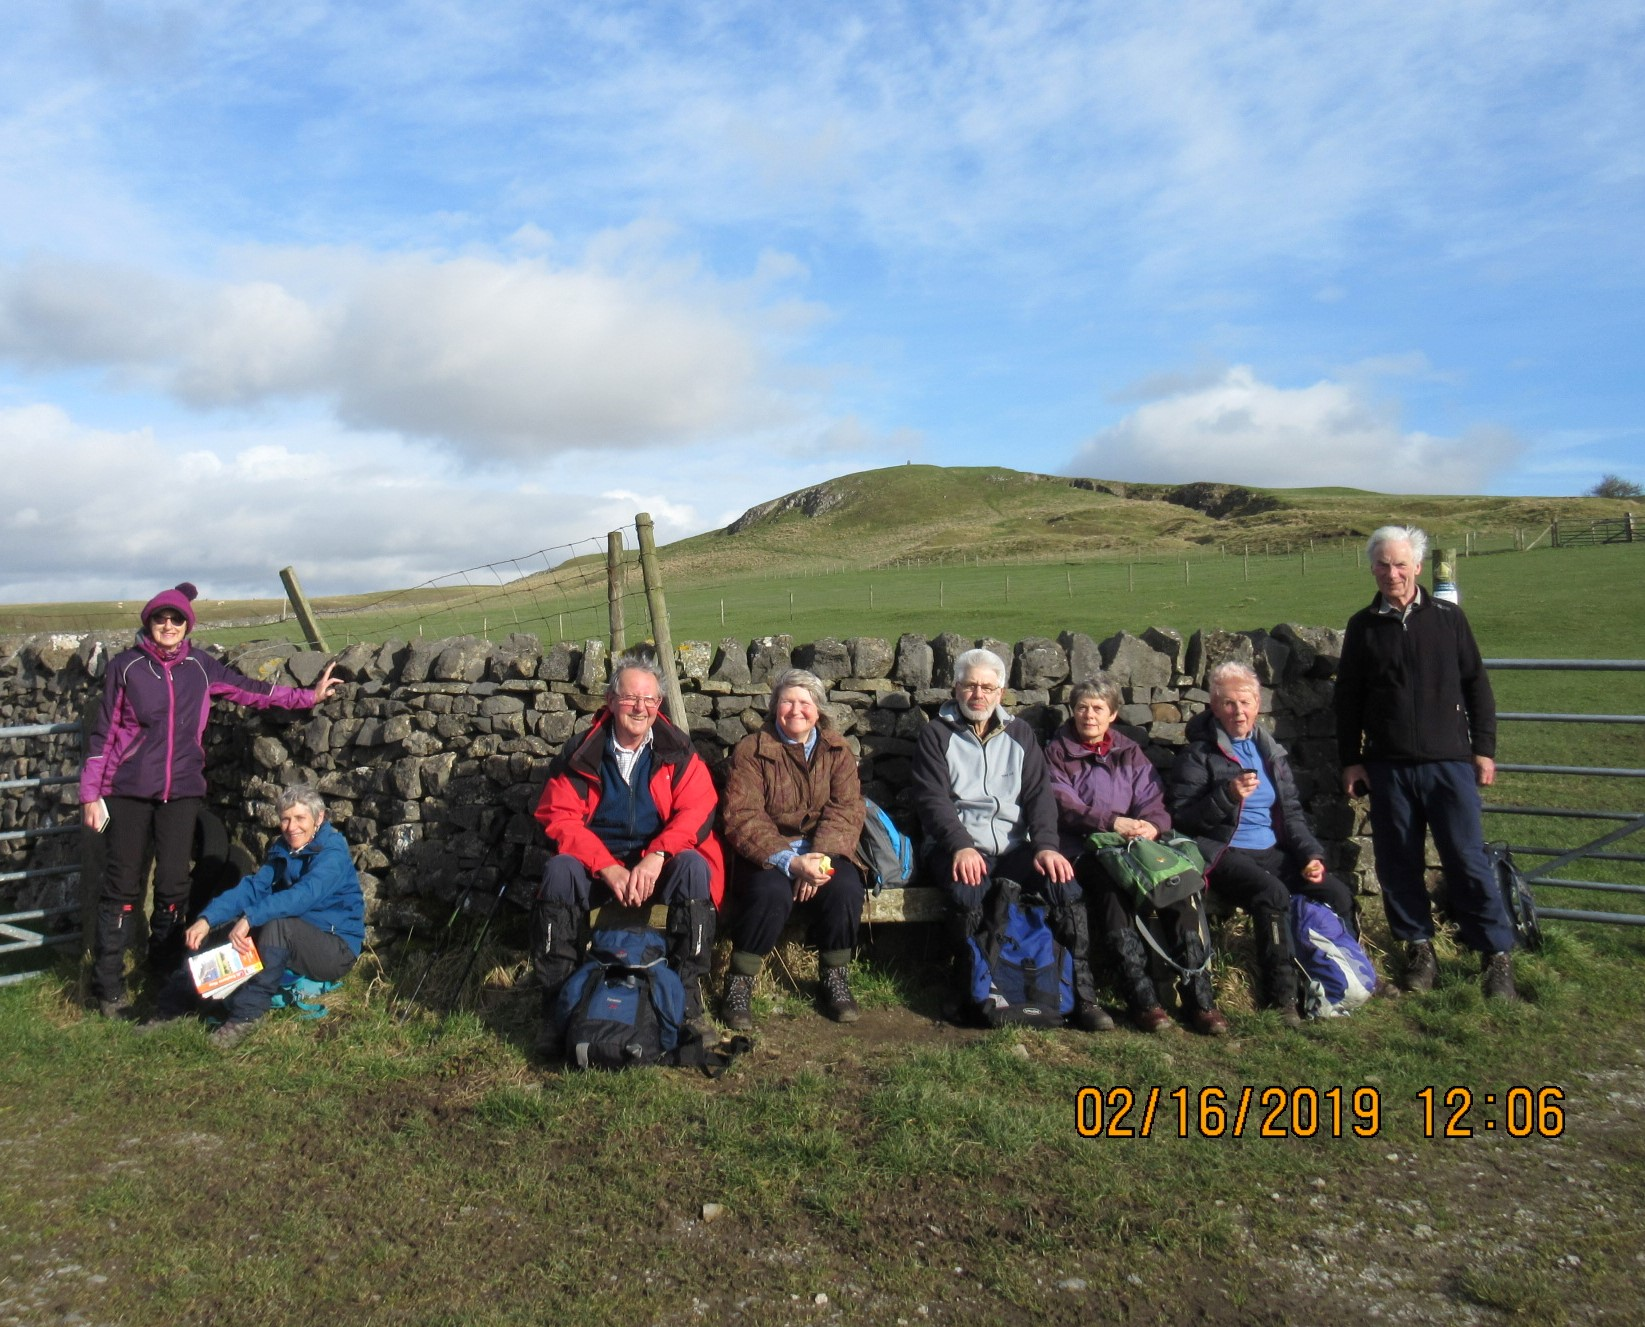 Walkers on the Gargrave Circular walk